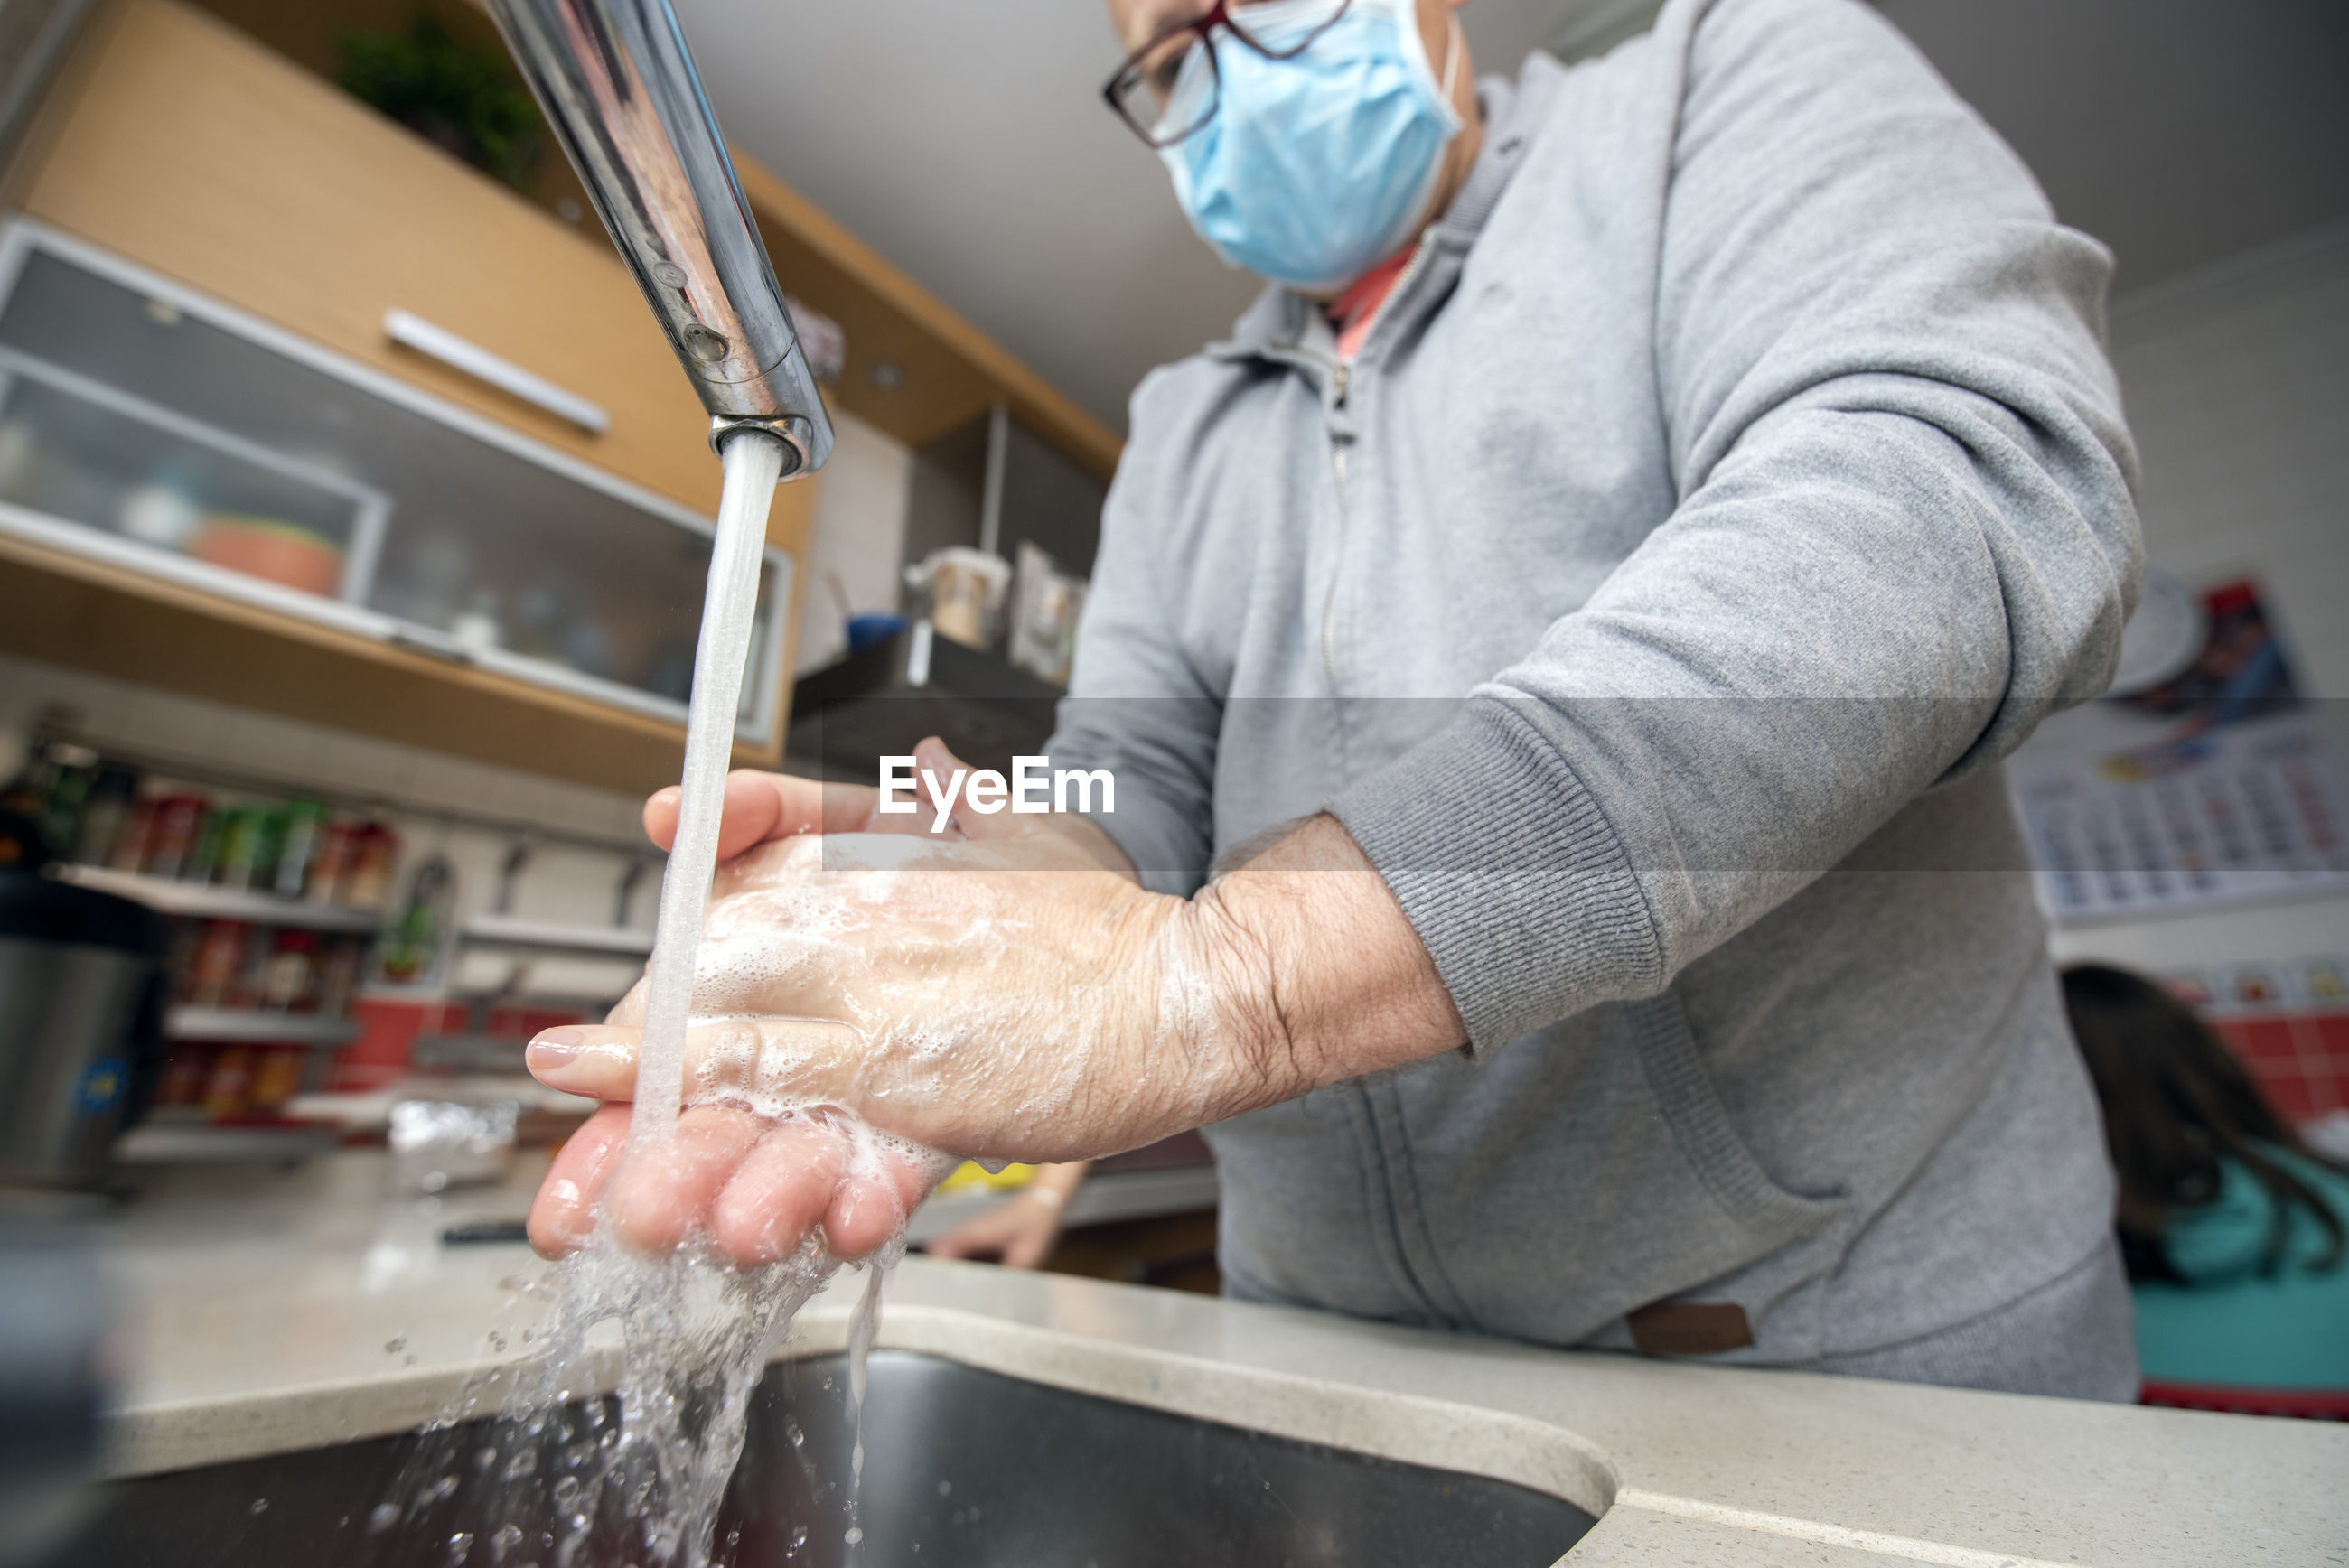 Midsection of man washing hands in sink